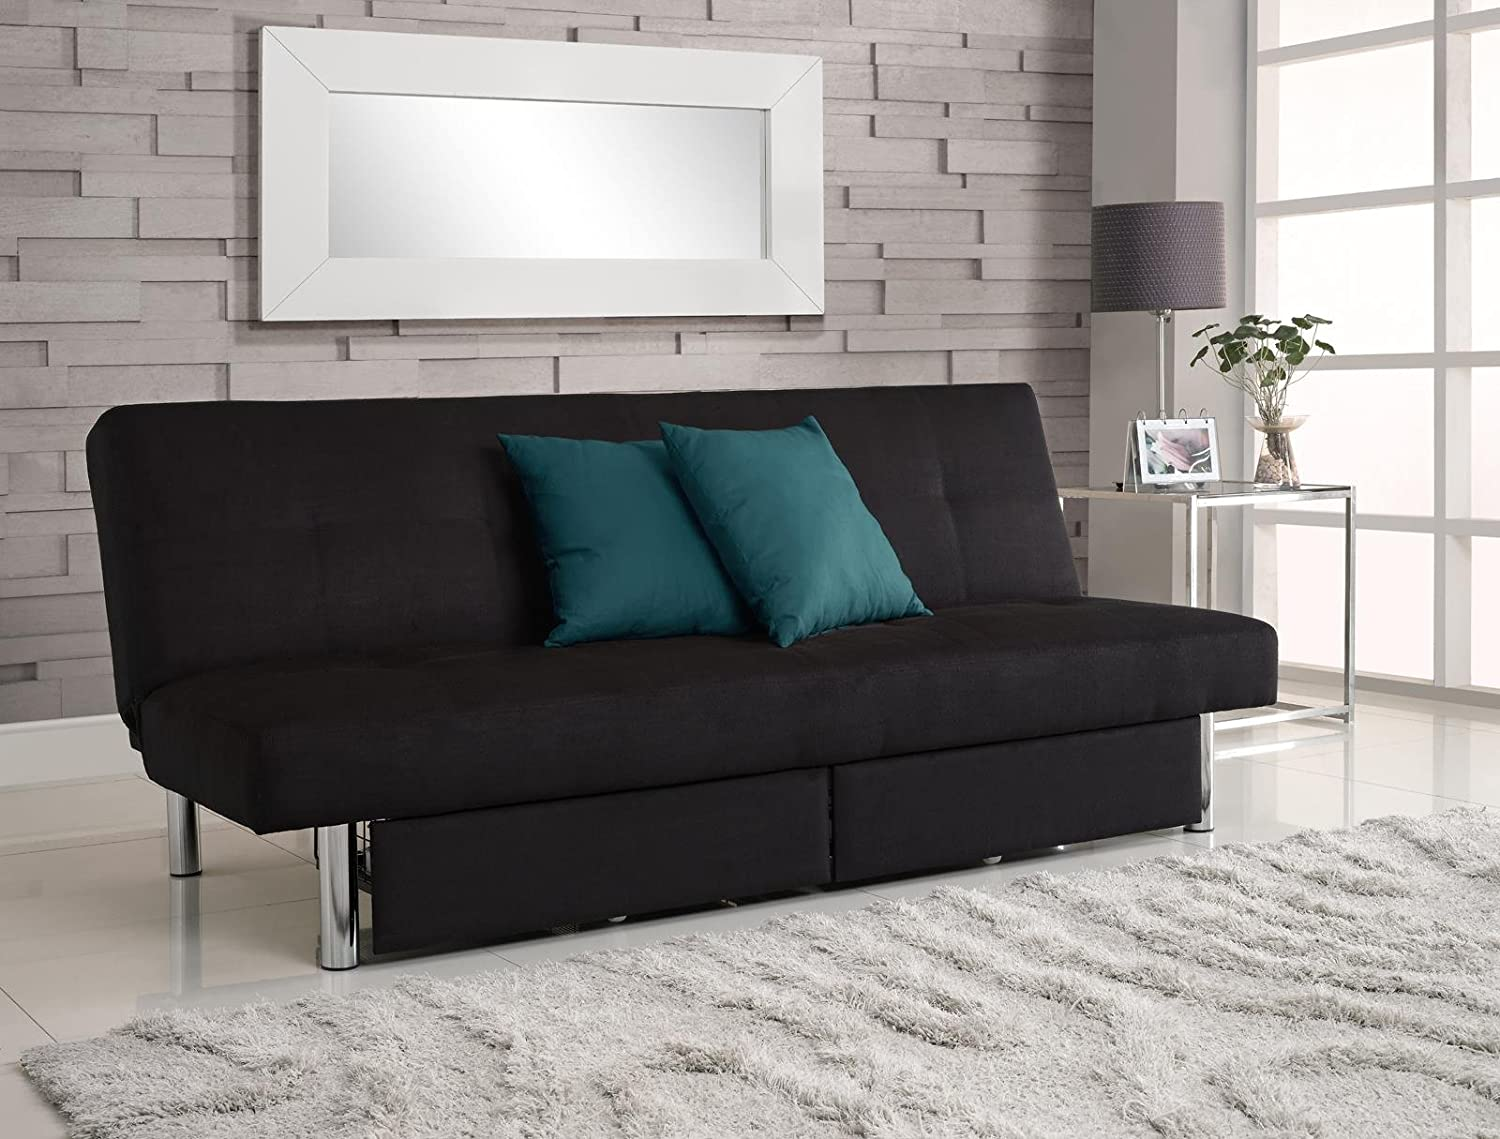 Contemporary Futon comfortable for home